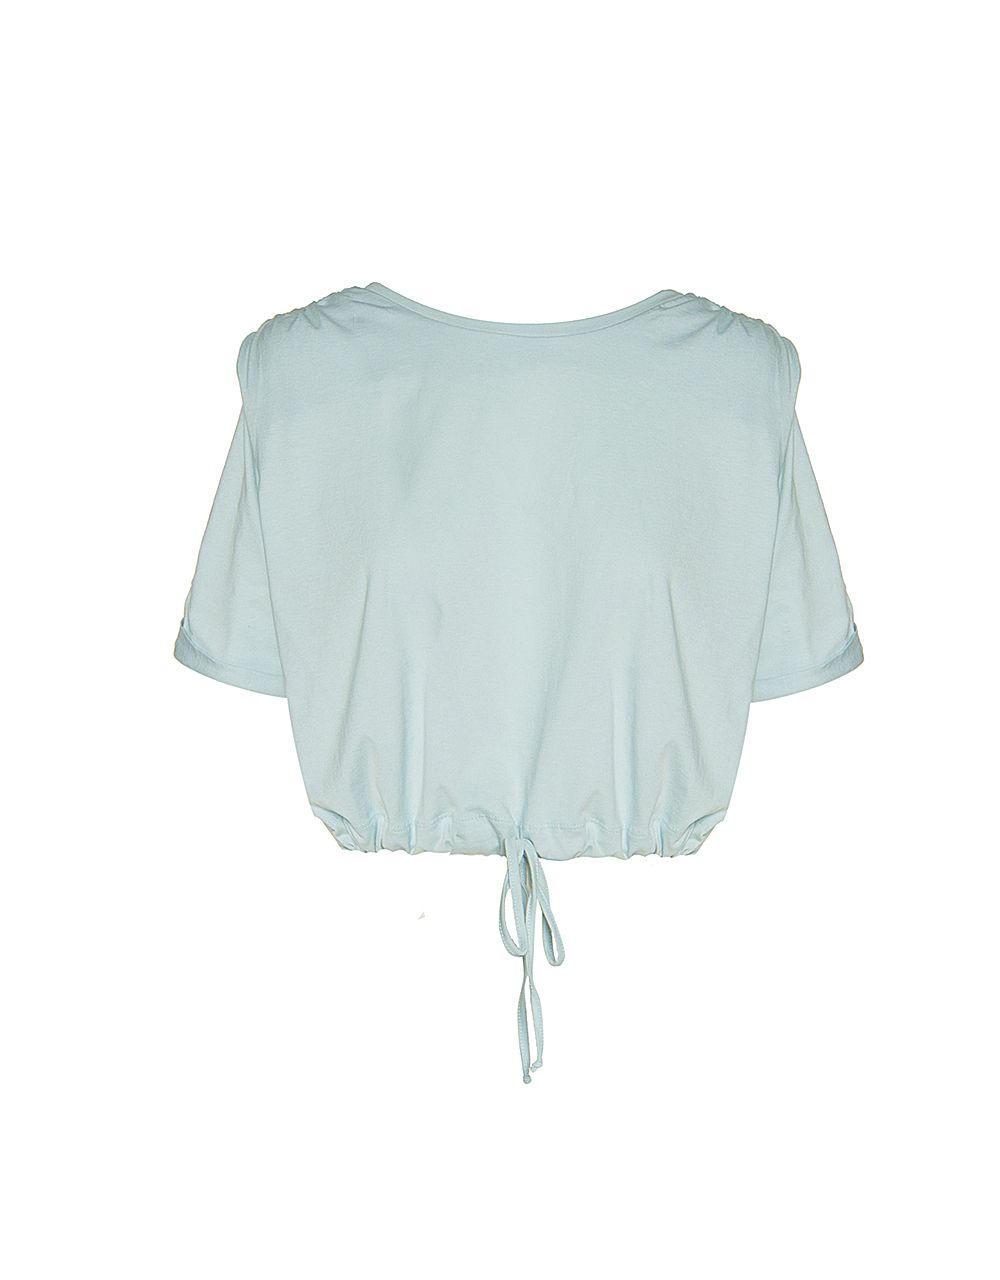 TOP WITH DRAWSTRING